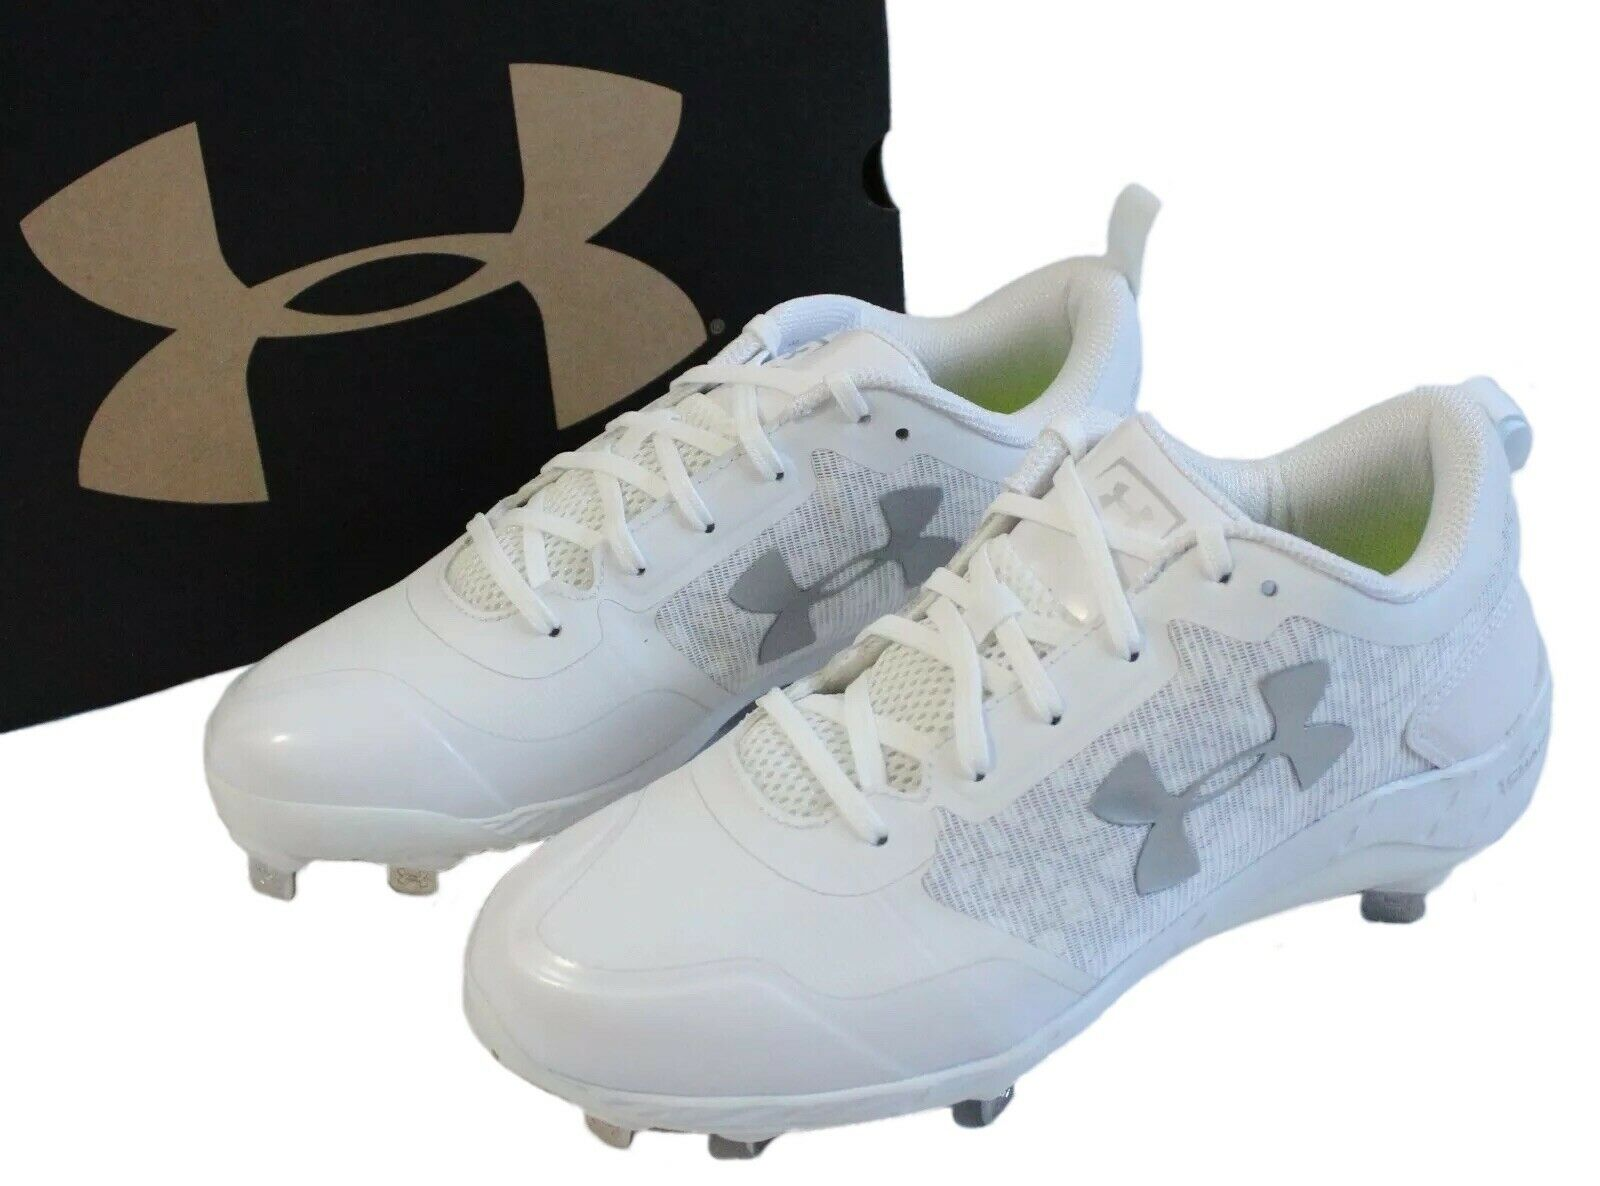 e230fa8fd7659 Under Armour Mens Size 8 Yard Low ST Baseball Cleats White 1293900-100 Shoes  1 of 7Only 3 available See More